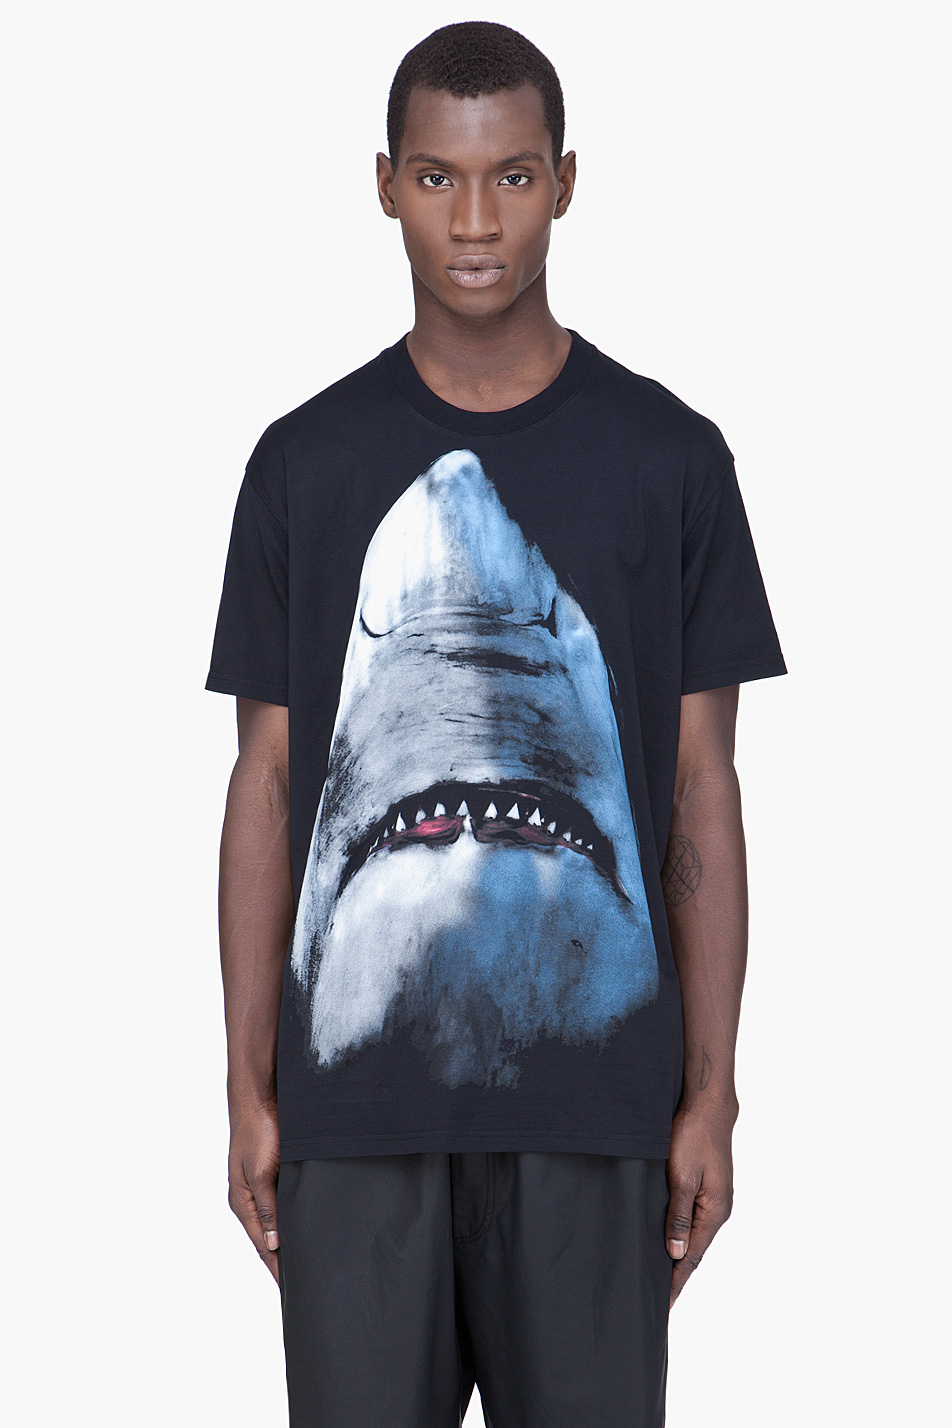 Lyst - Givenchy Shark Print T-Shirt in Black for Men 4eb5f31b36